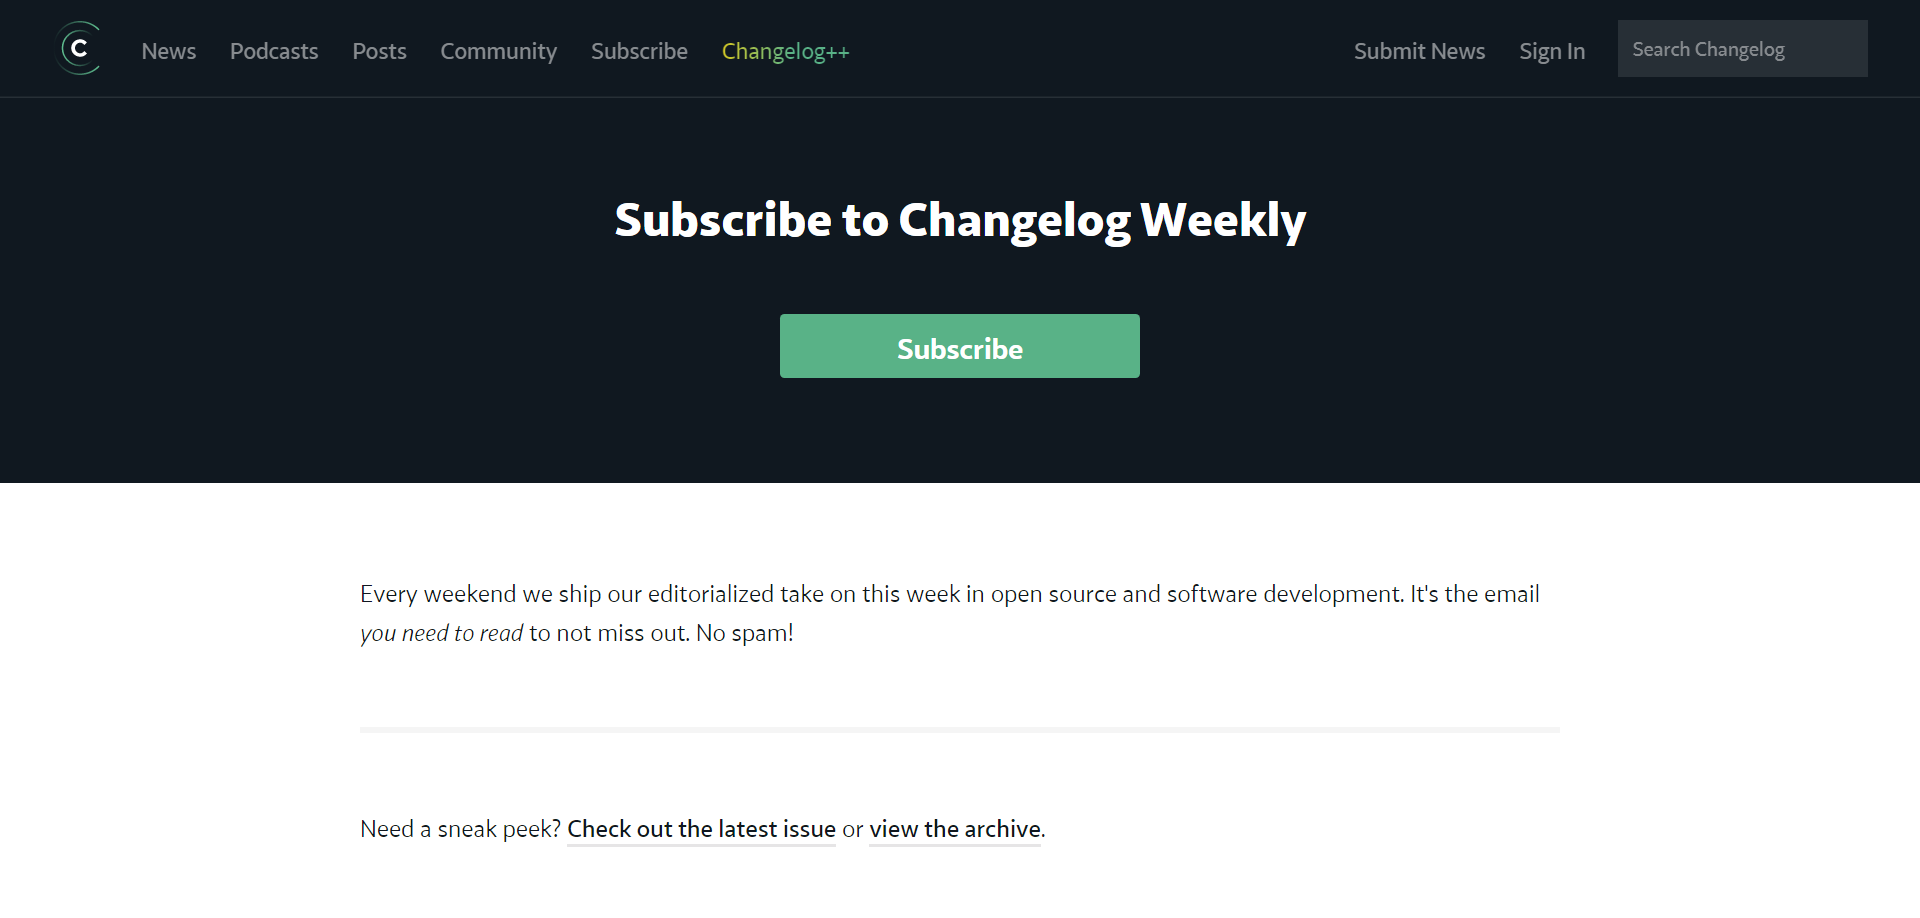 Changelog Weekly signup form